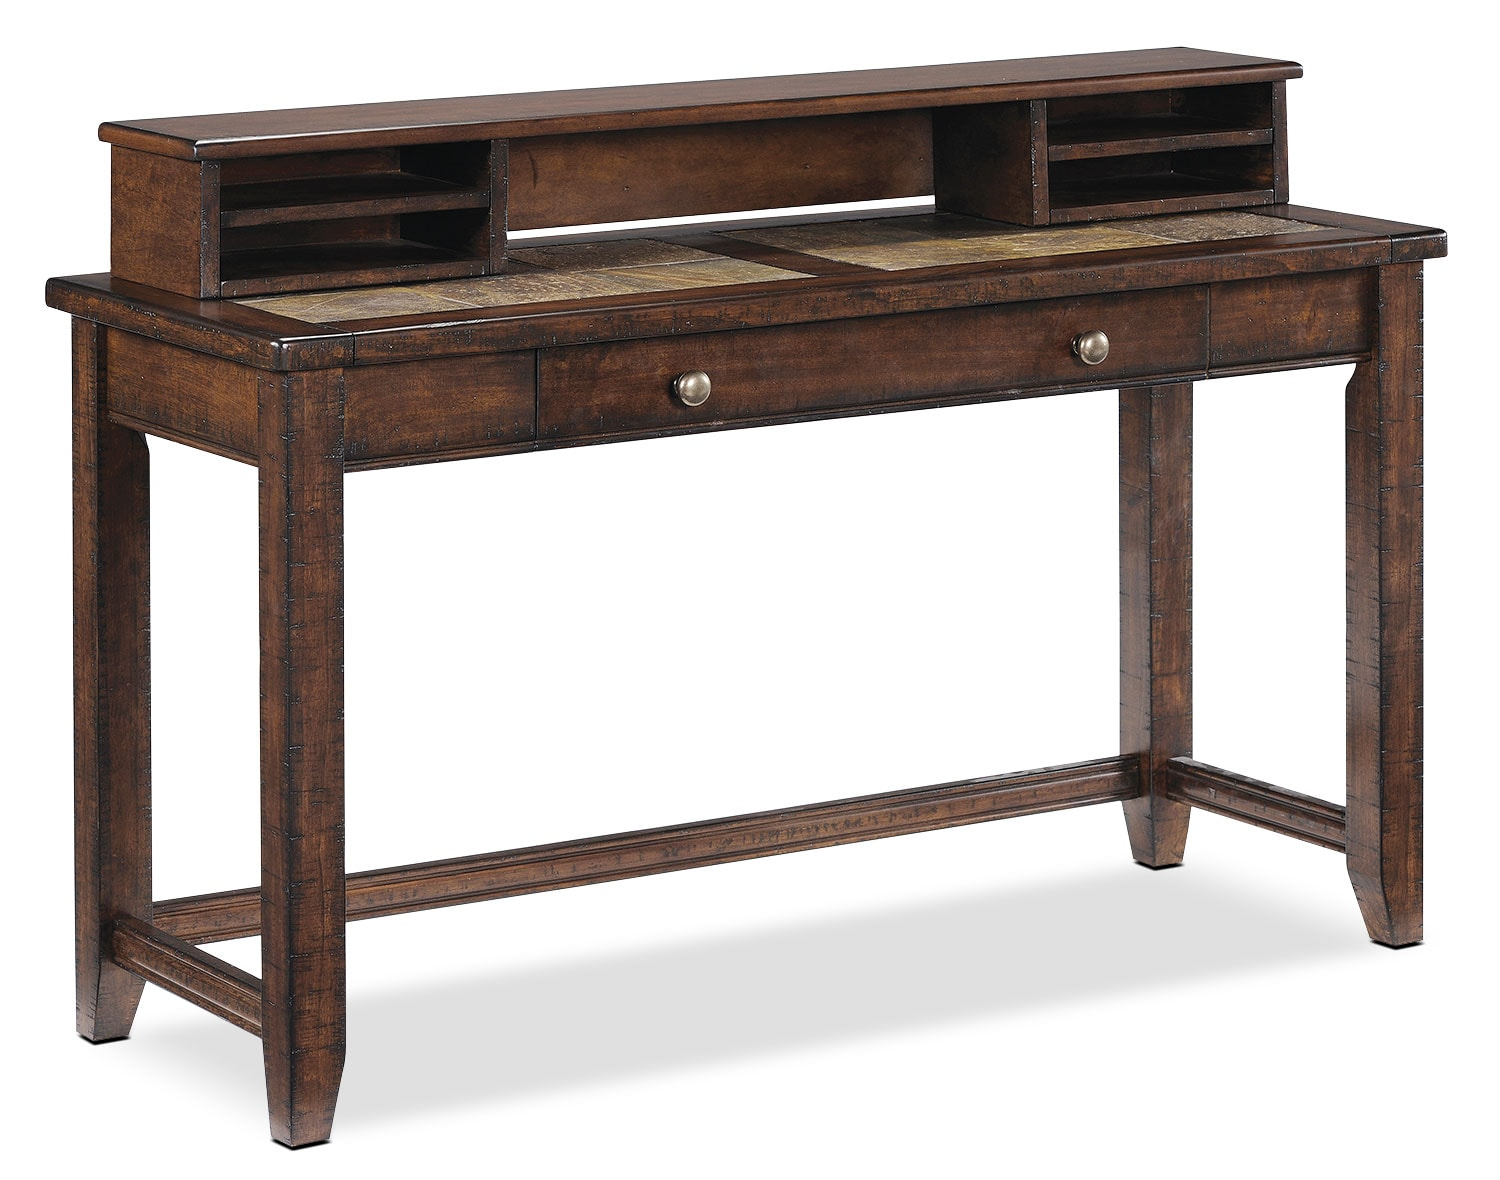 Allister Sofa Desk Table - Cinnamon